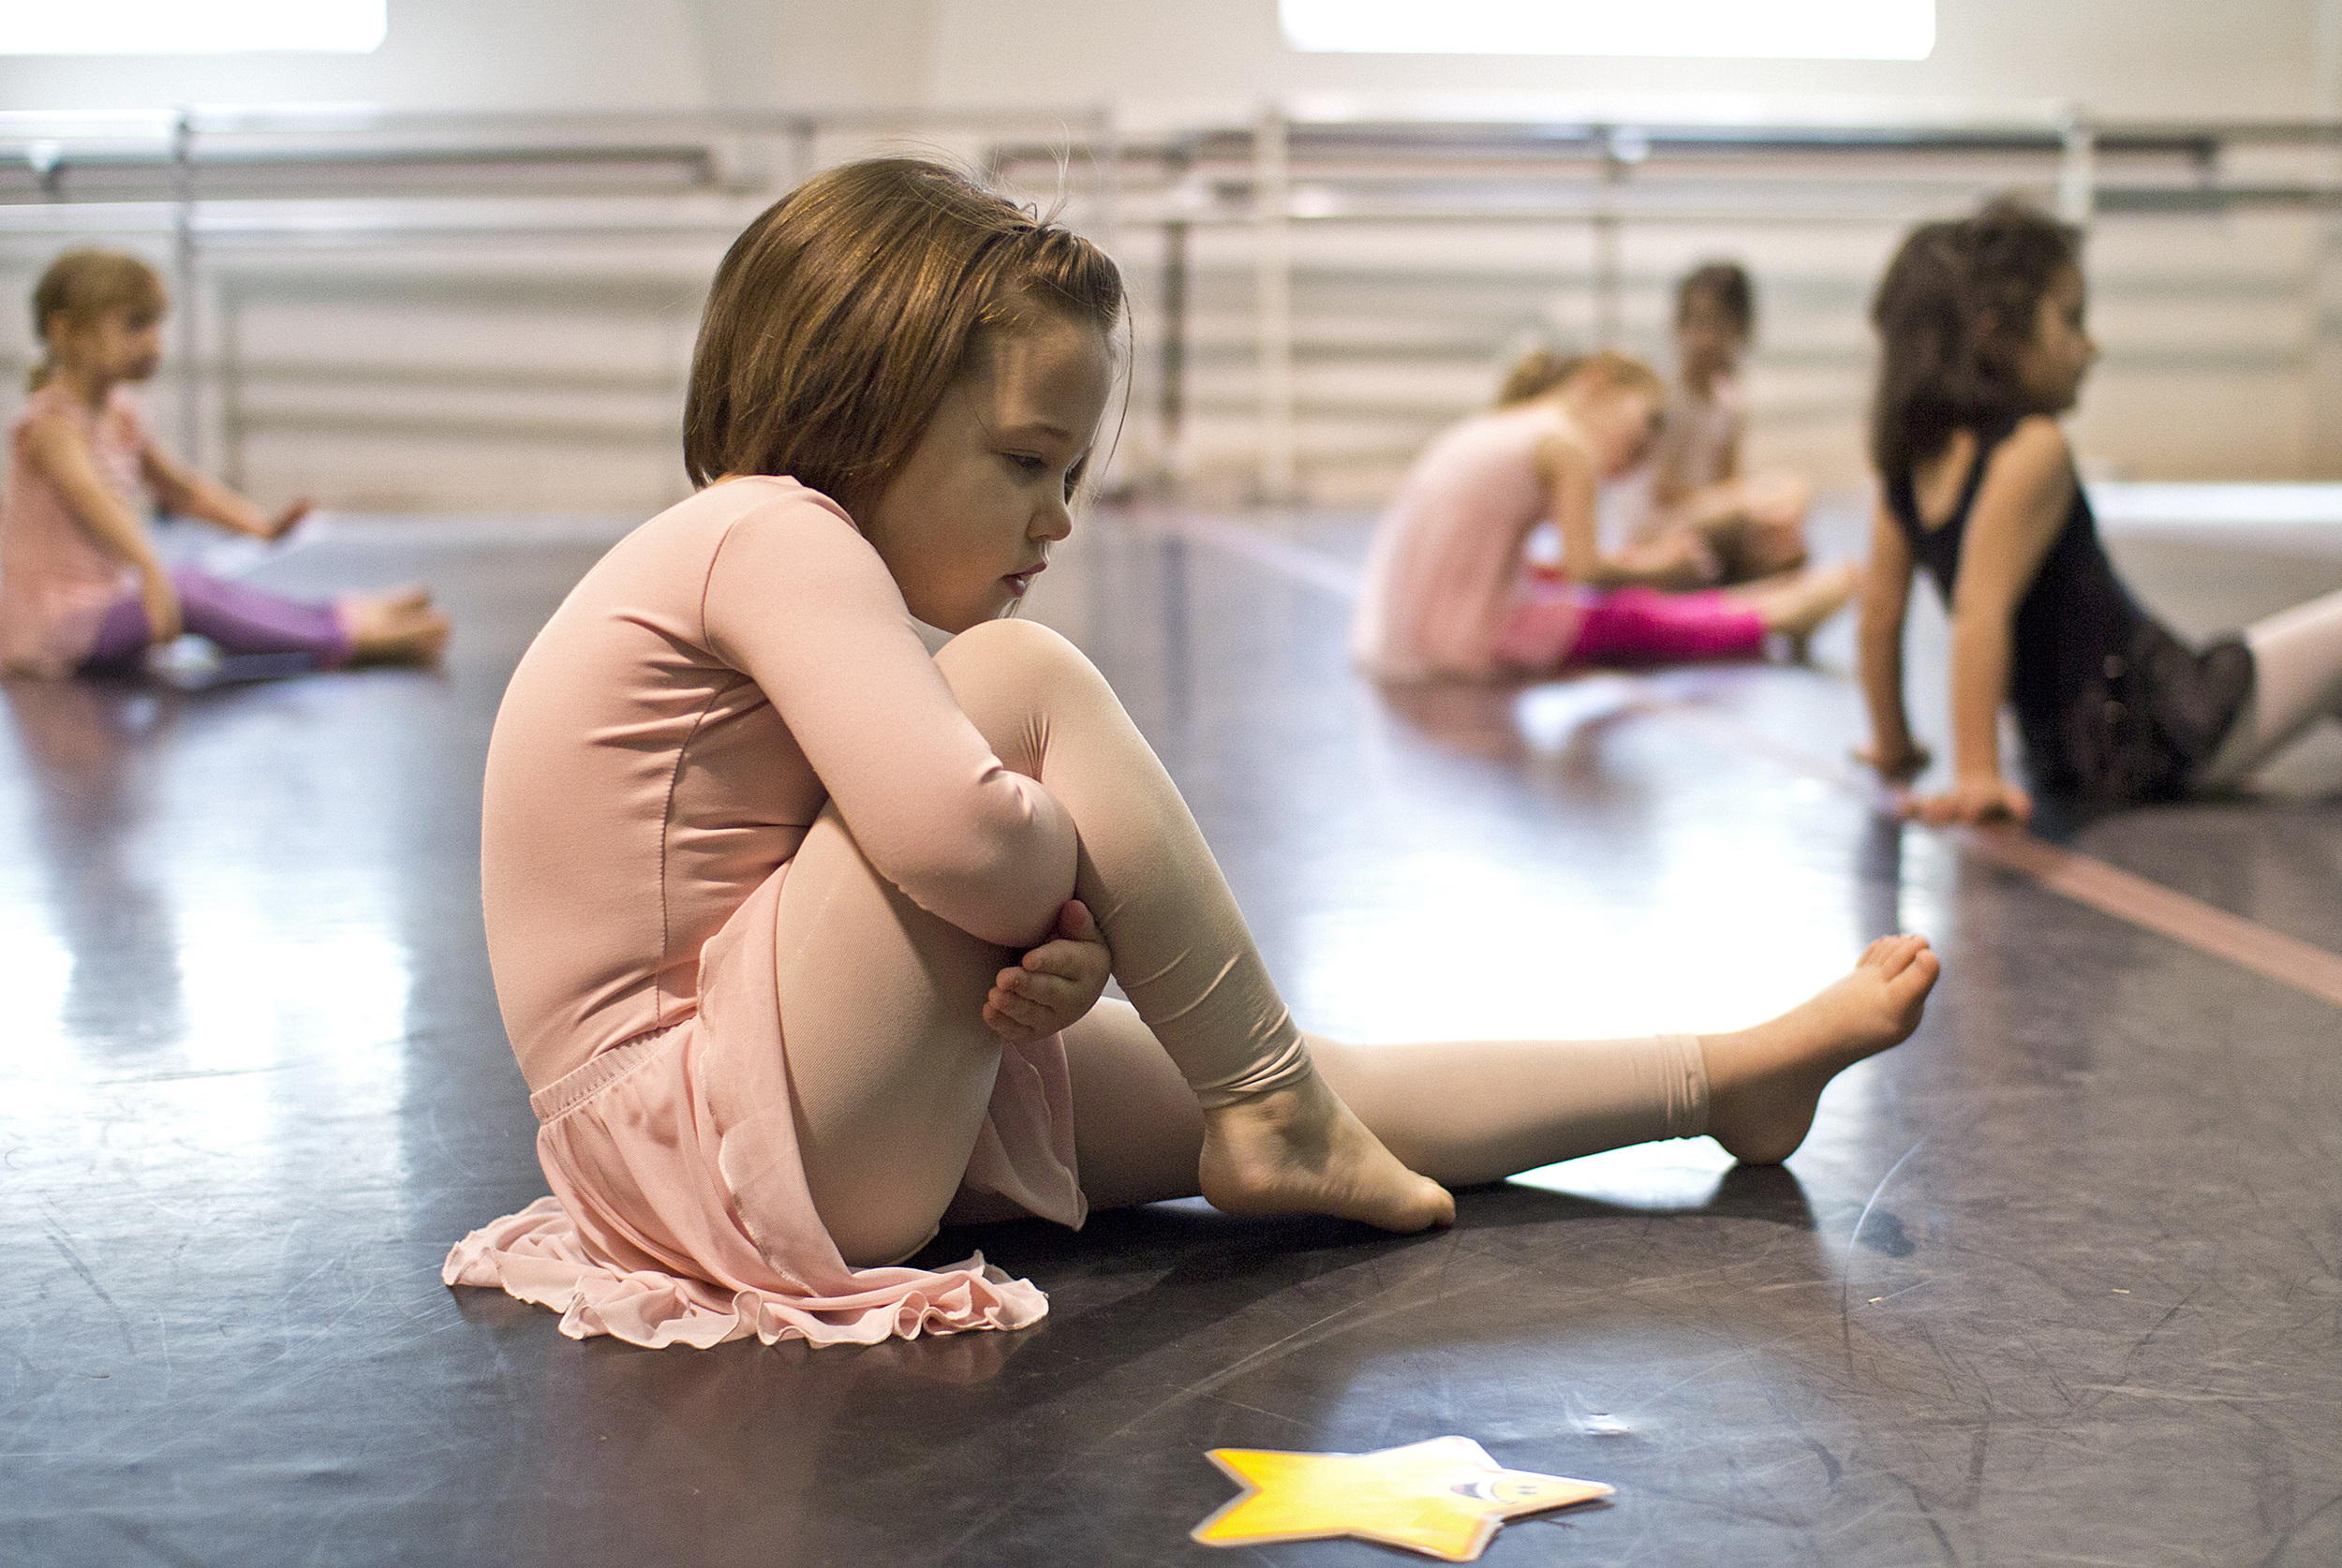 Kamdyn Mathews, 4, of Carterville, Ill., participates in an exercise during a preschool dance class on March18at Willow Street Studios in Carbondale, Ill.